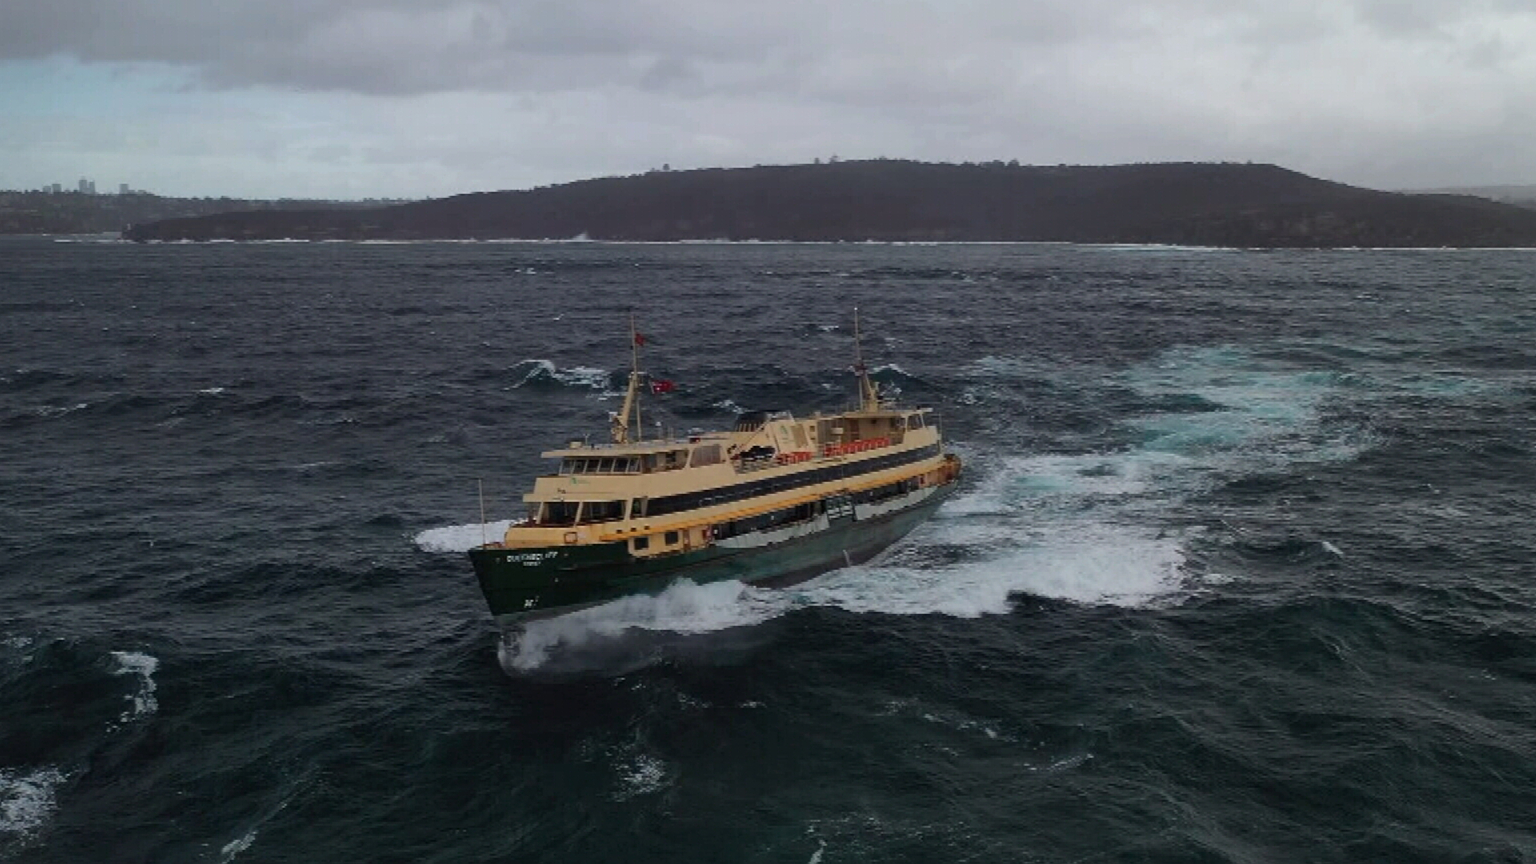 Manly ferry battles swell in Sydney Harbour